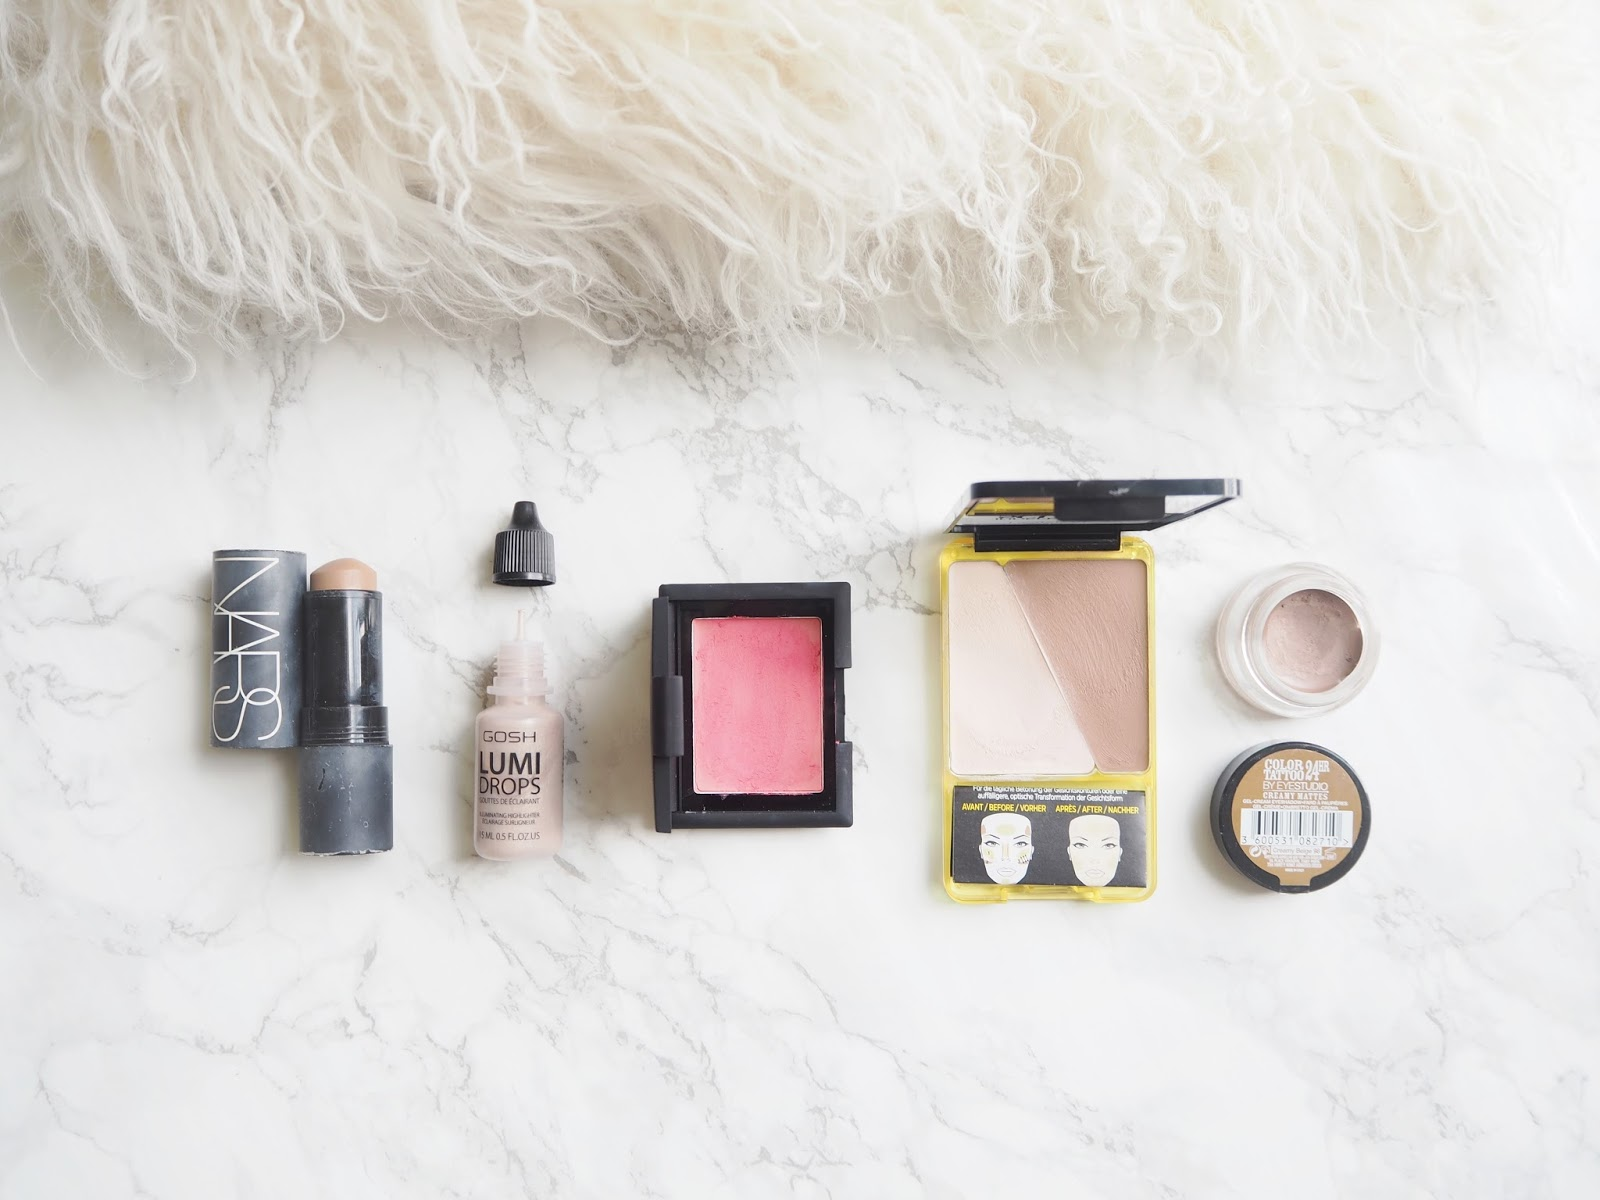 Five Cream Product Favourites, cream products for summer, nars matte multiple altai, gosh lumi drops 002 vanilla, sleek creme to powder blush french rose, loreal infallible sculpt contour palette review, maybelline color tattoo leather effect creamy beige, review